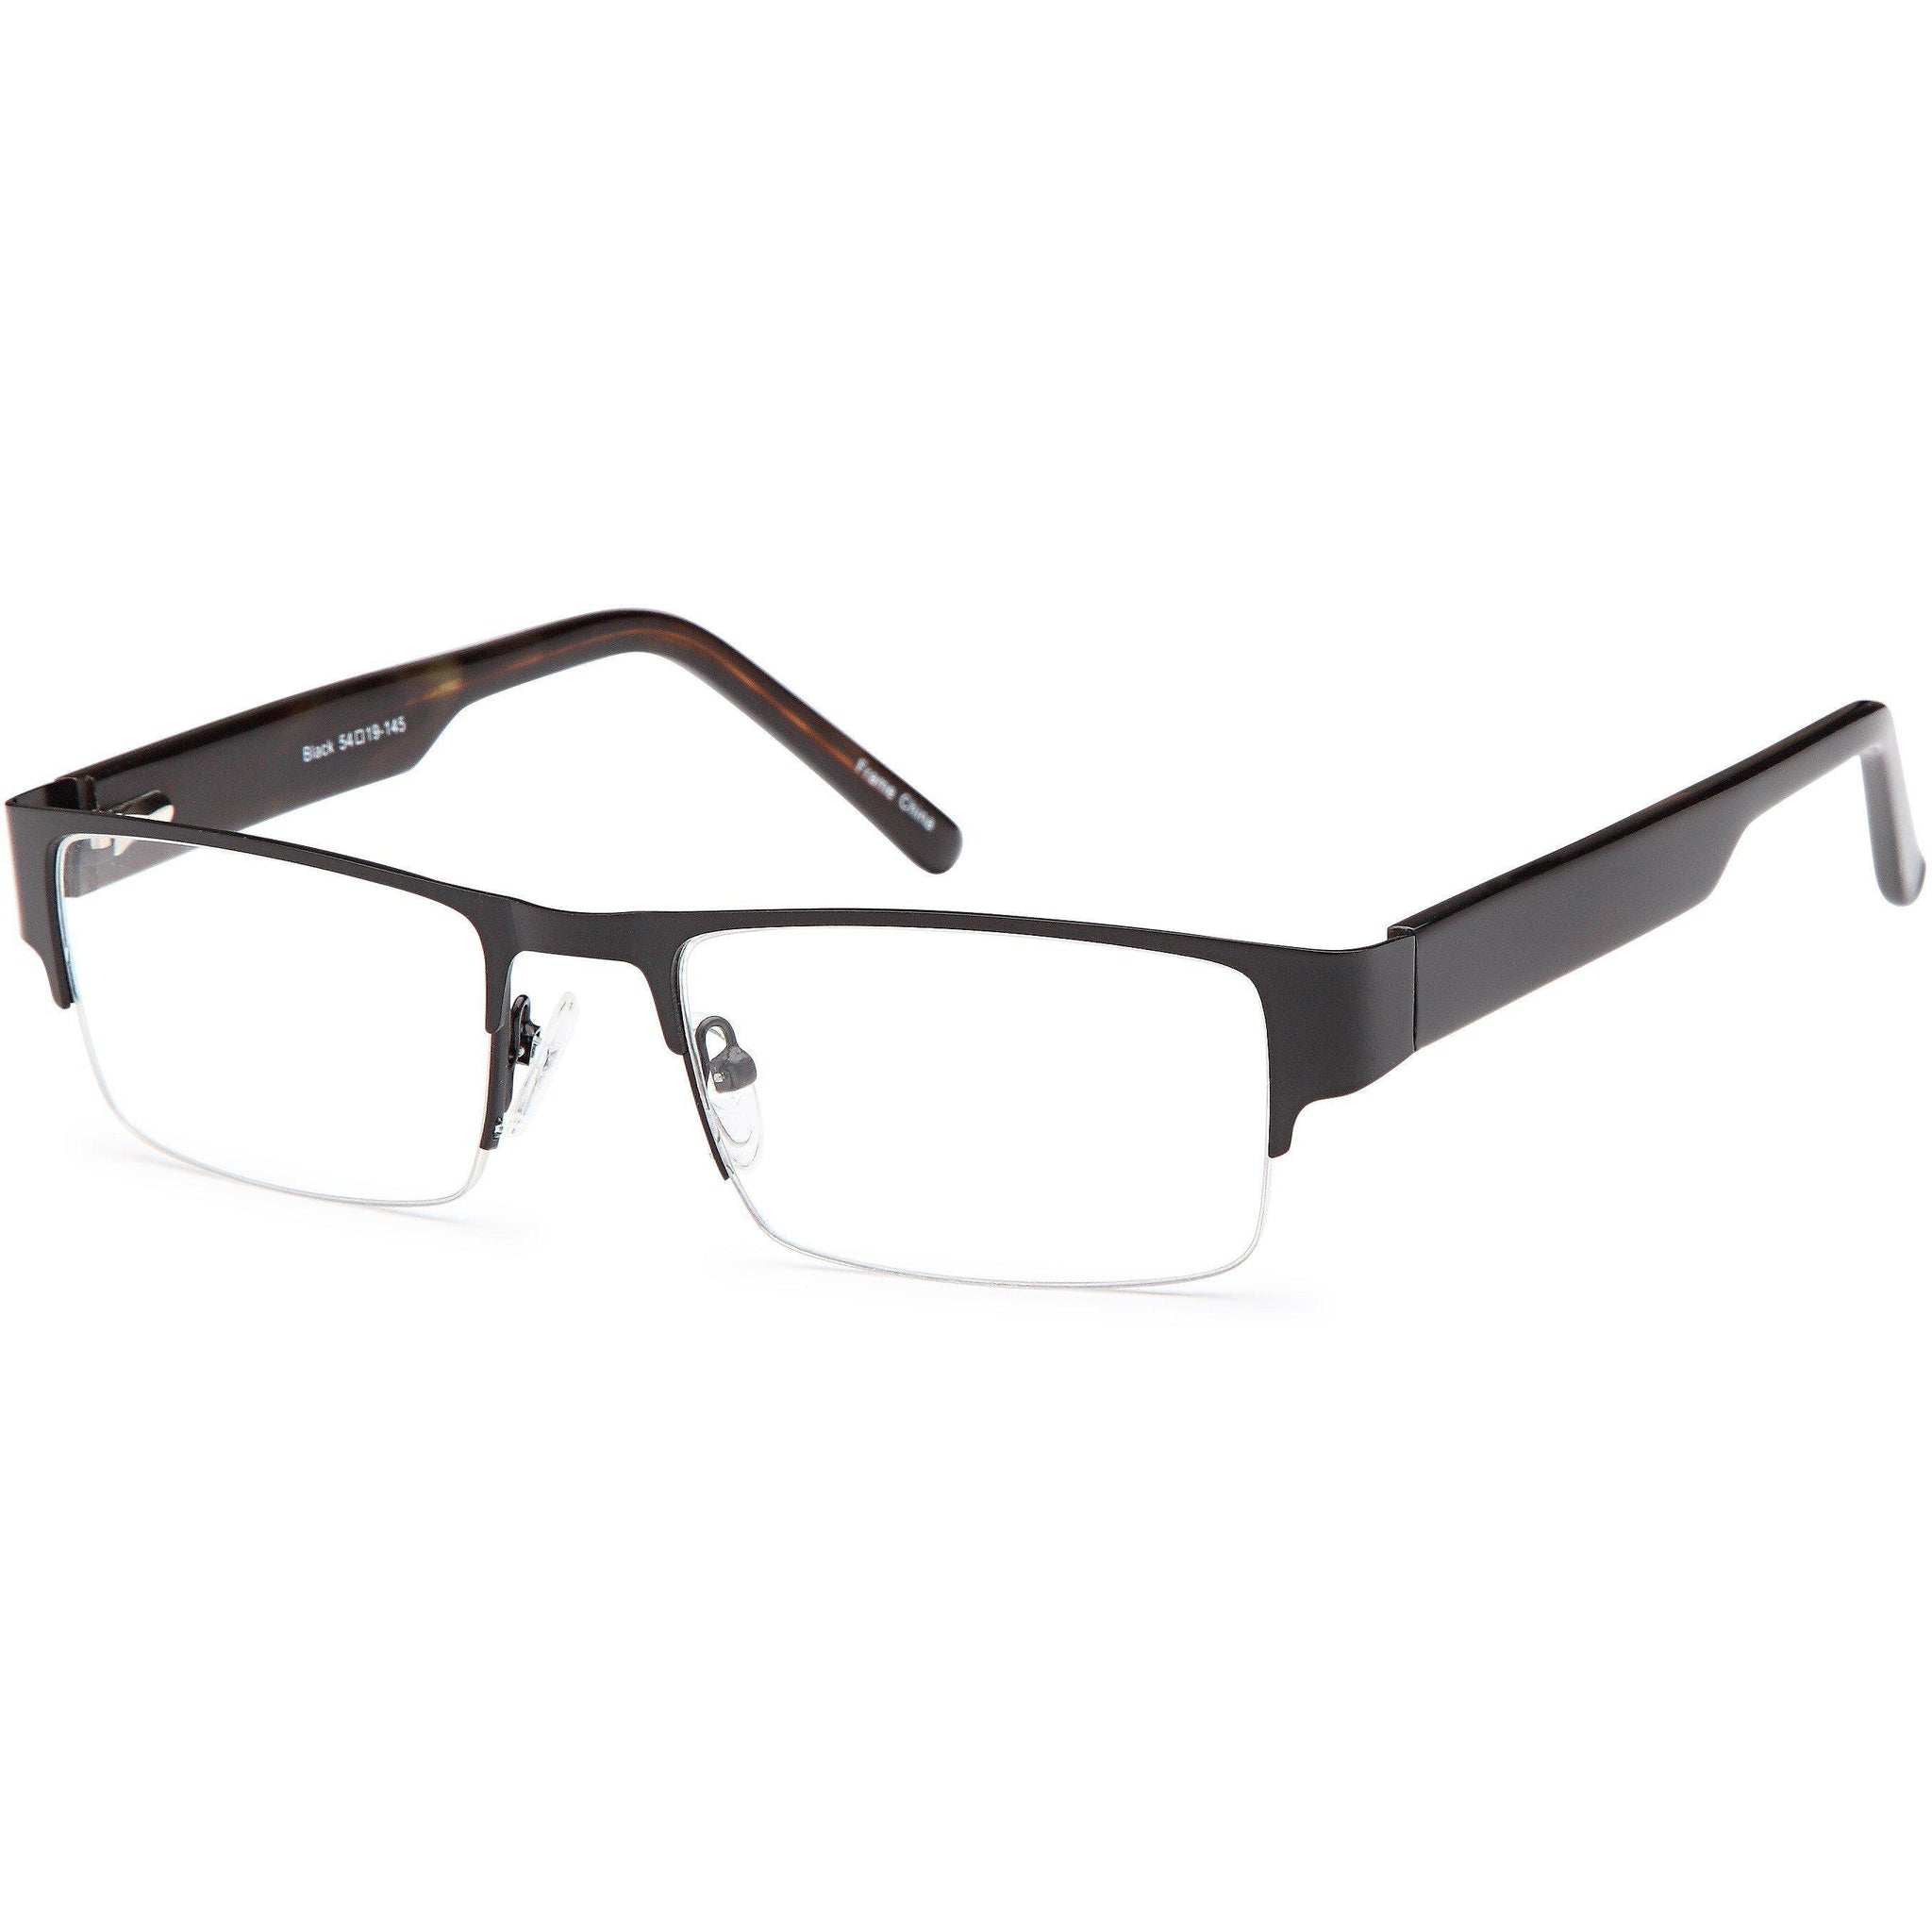 Di Caprio Prescription Glasses DC 128 Eyeglasses Frame - timetoshade